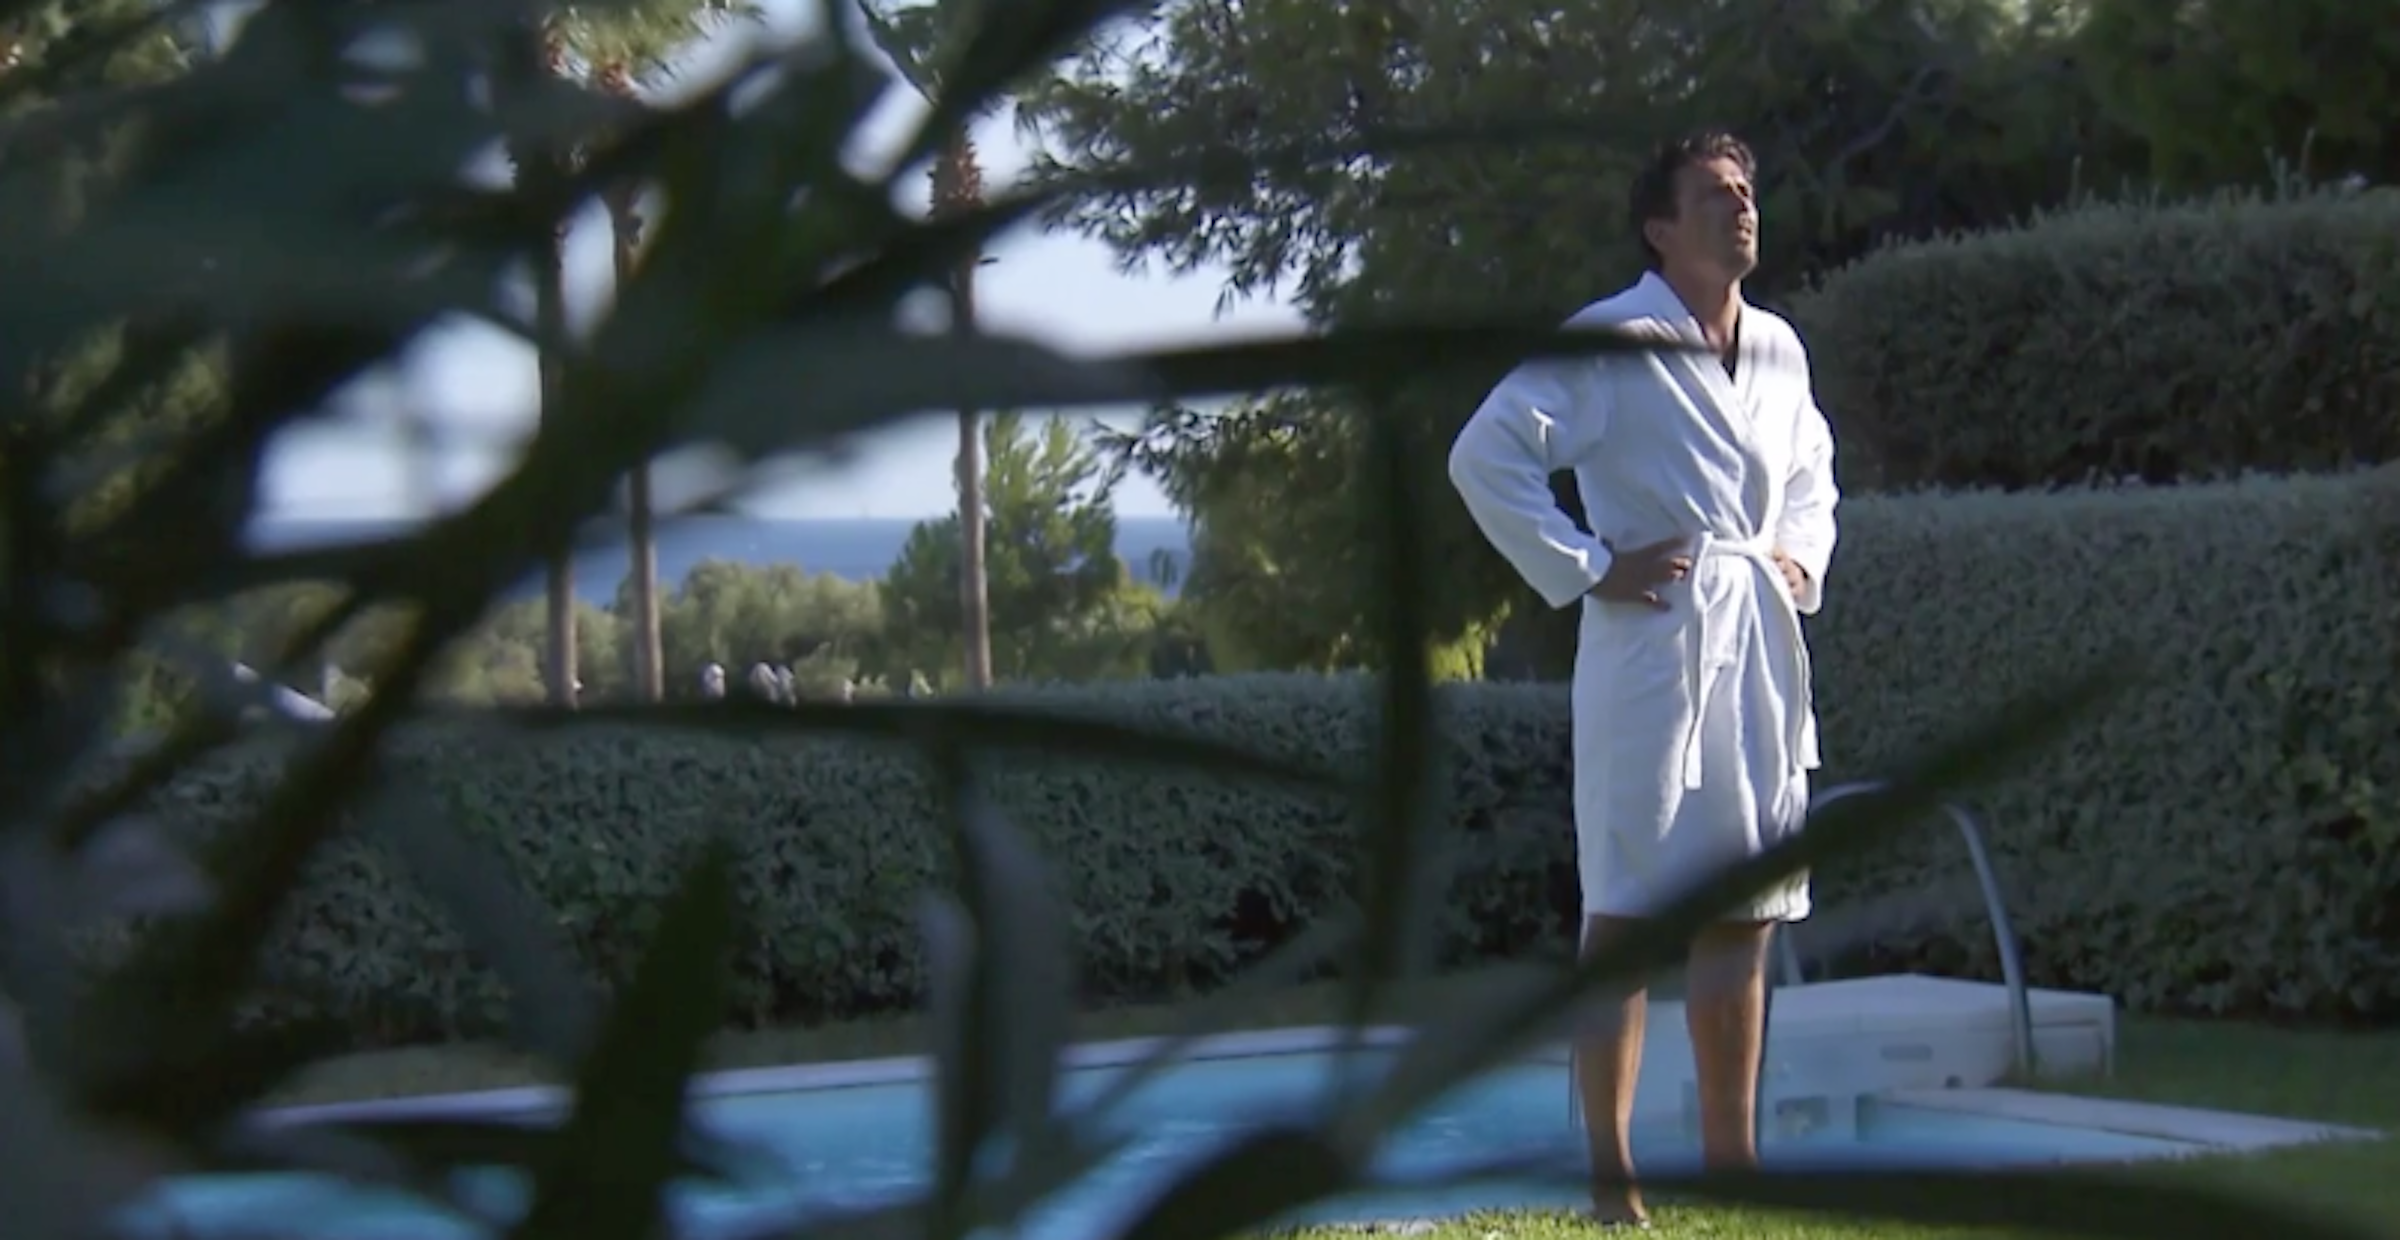 Dames dating matrix